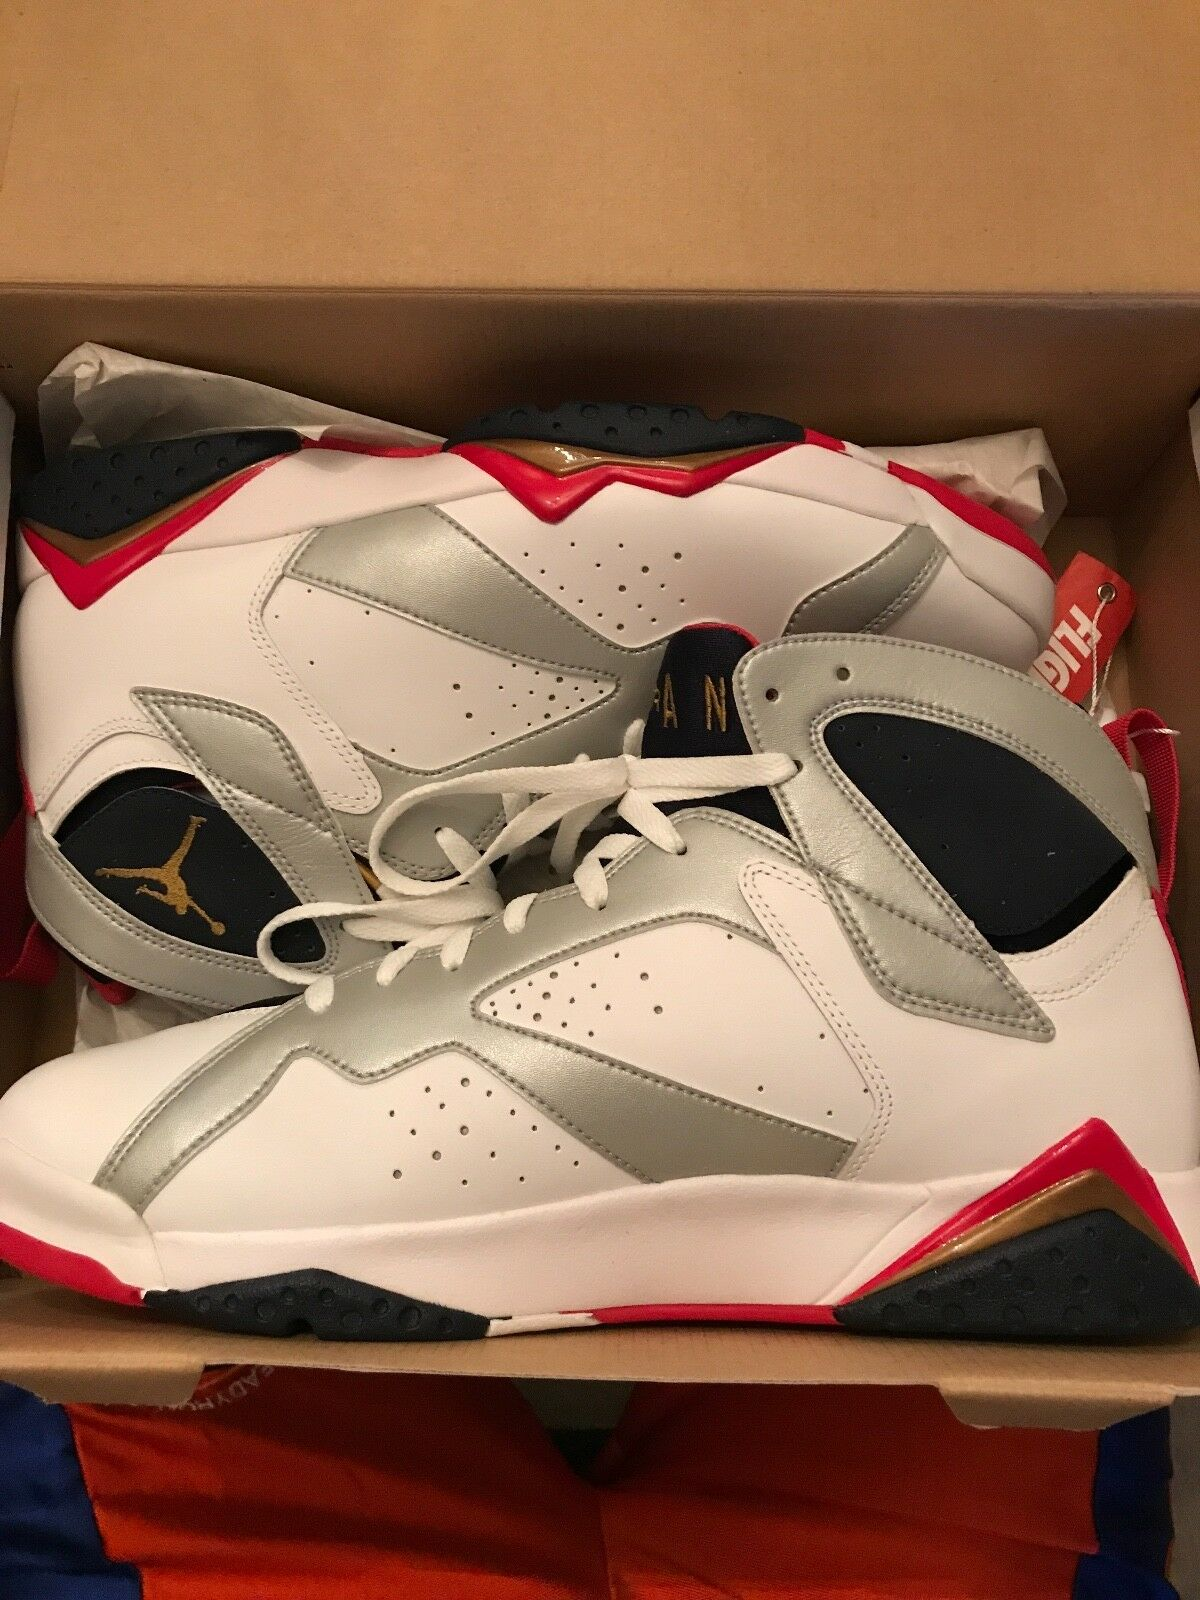 Olympic 7s Jordan Shoes 2018 Release Brand New Condition